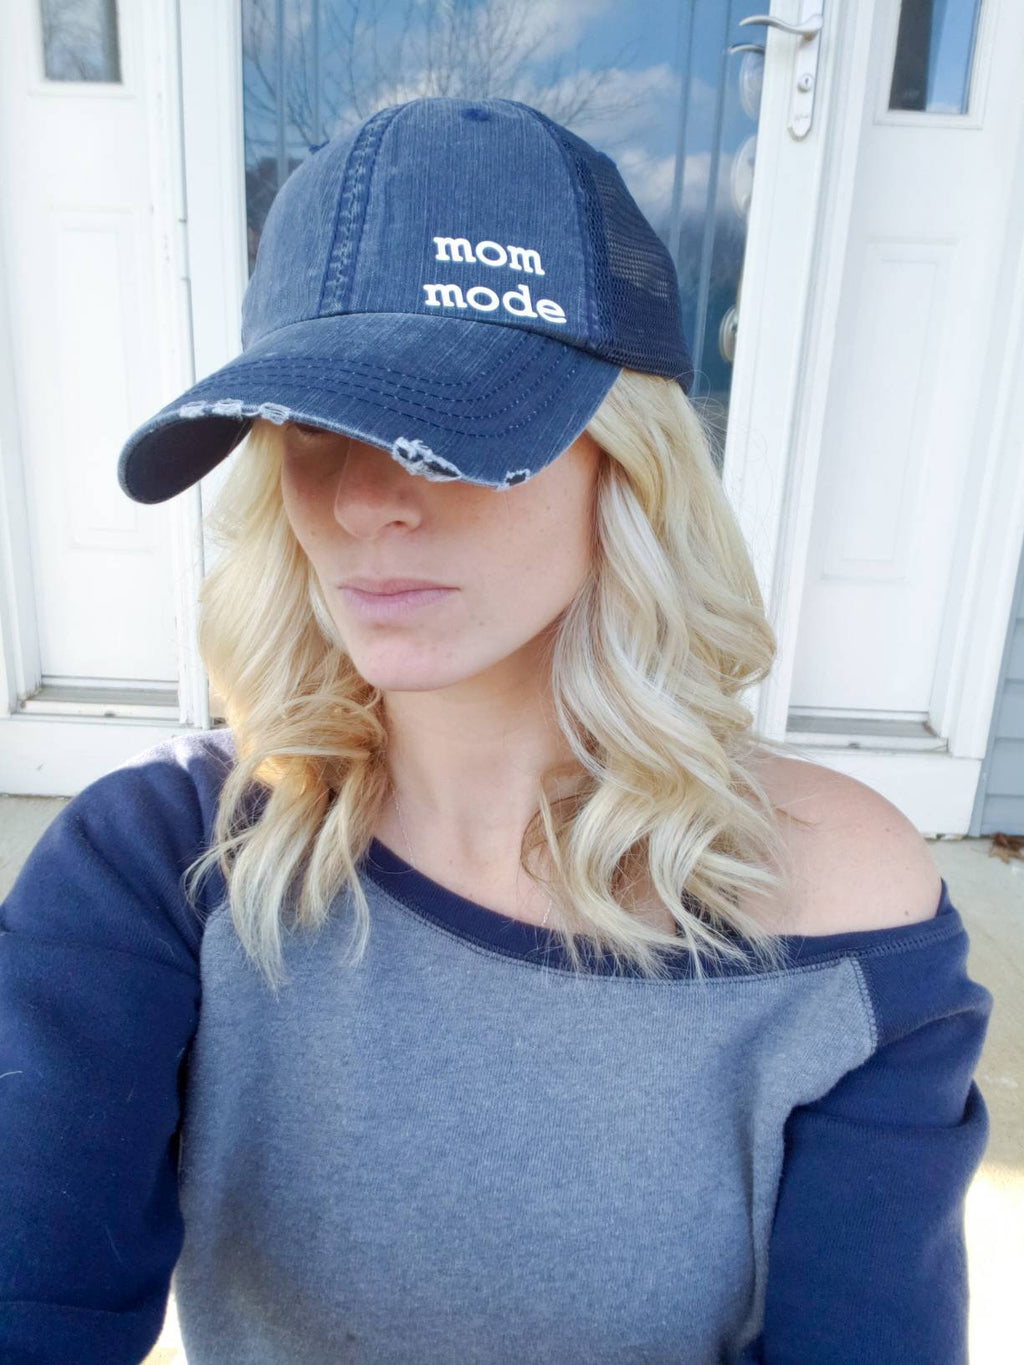 Mom Mode Hat • Vintage Trucker Mom Hat -